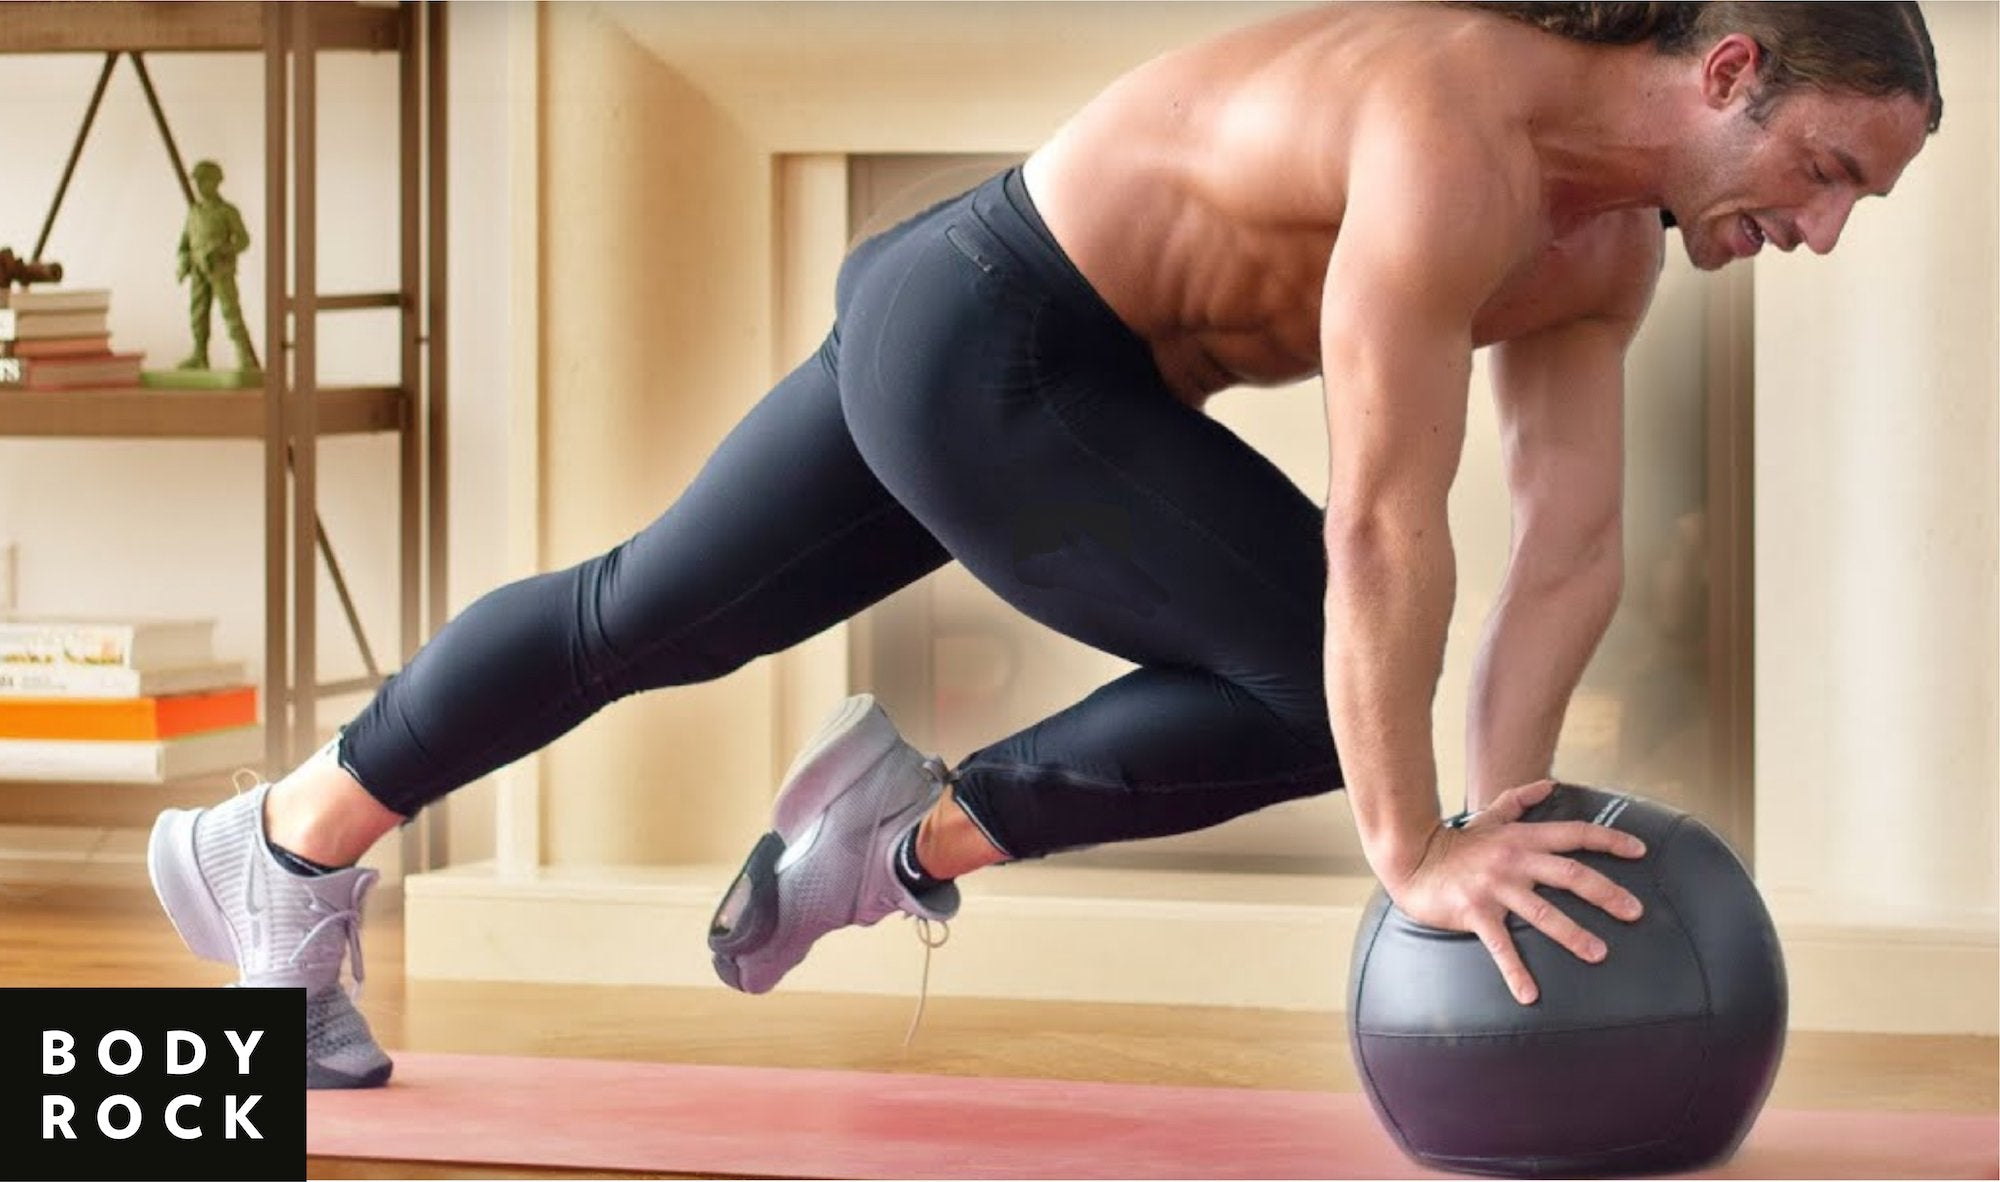 /blogs/news/increase-your-rear-appeal-try-this-24-minute-home-booty-workout